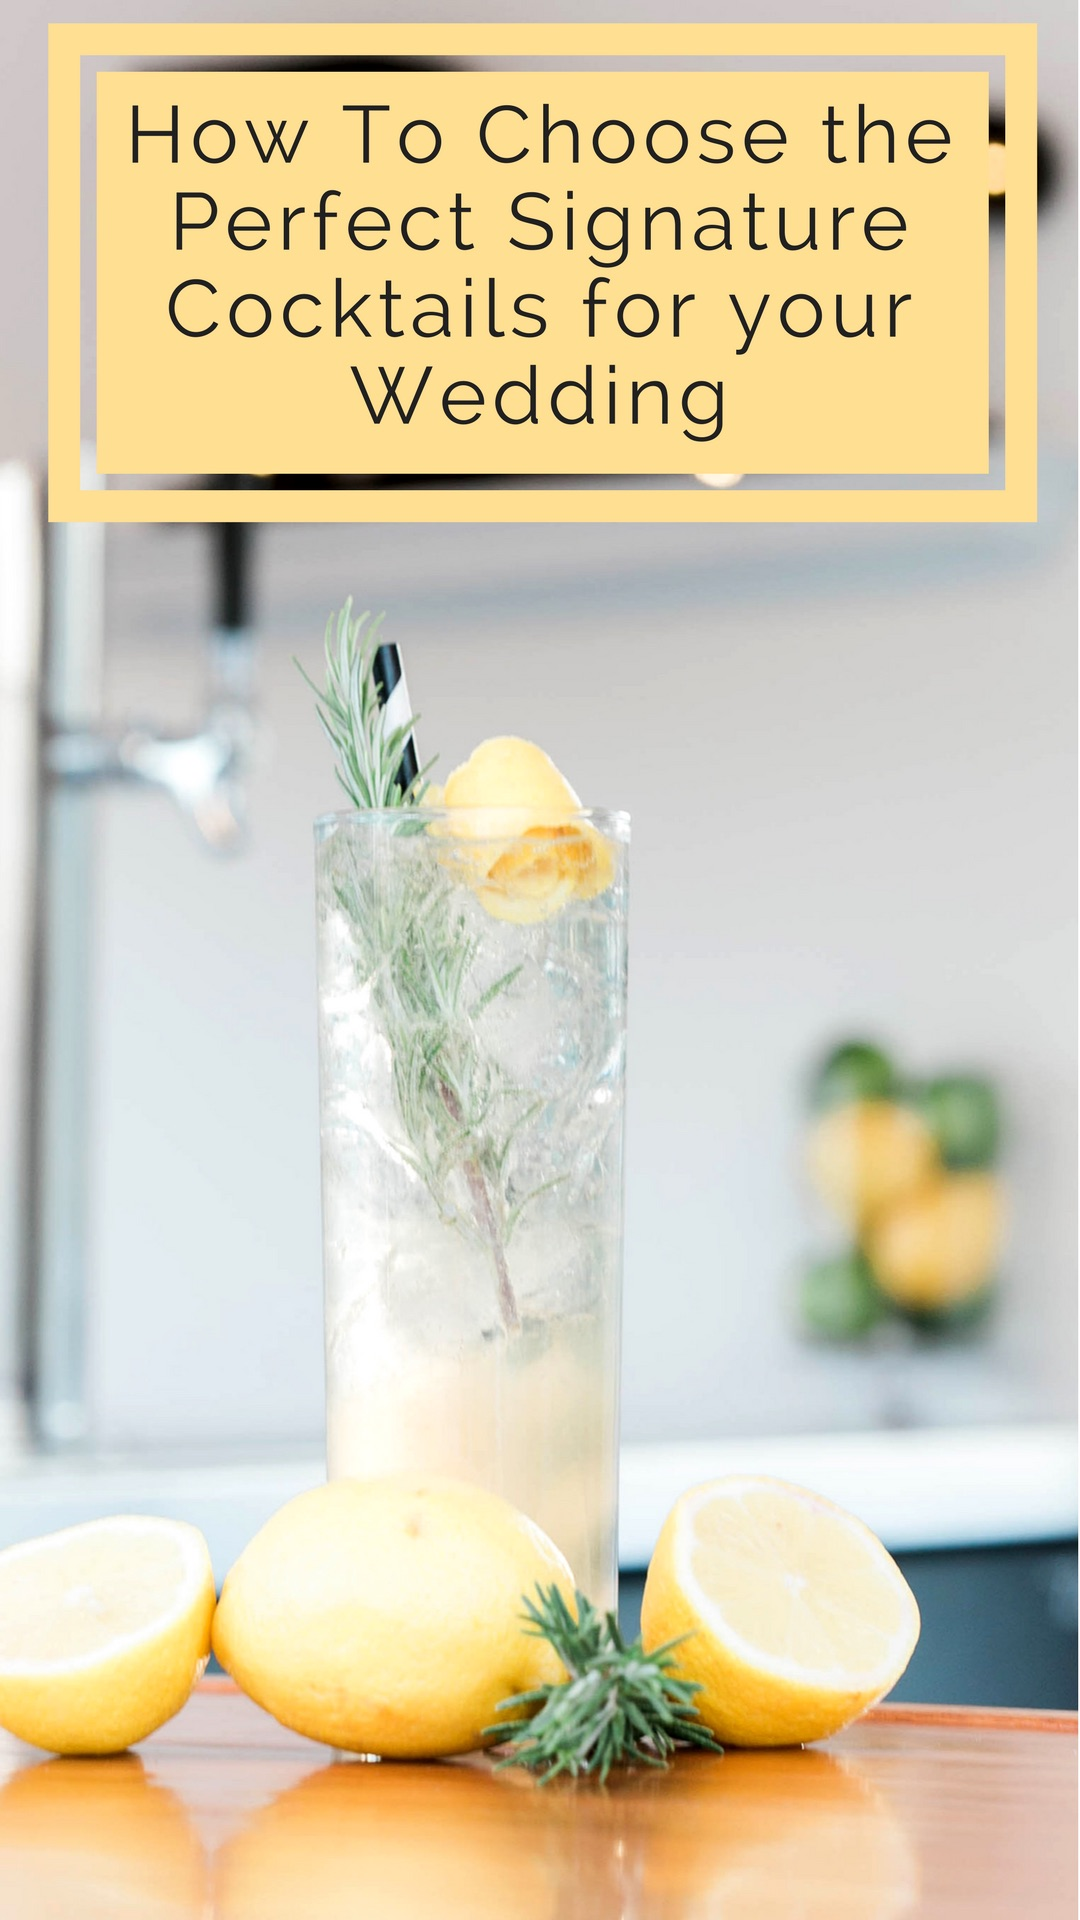 How To Choose the Perfect Signature Cocktails for your Wedding.jpg